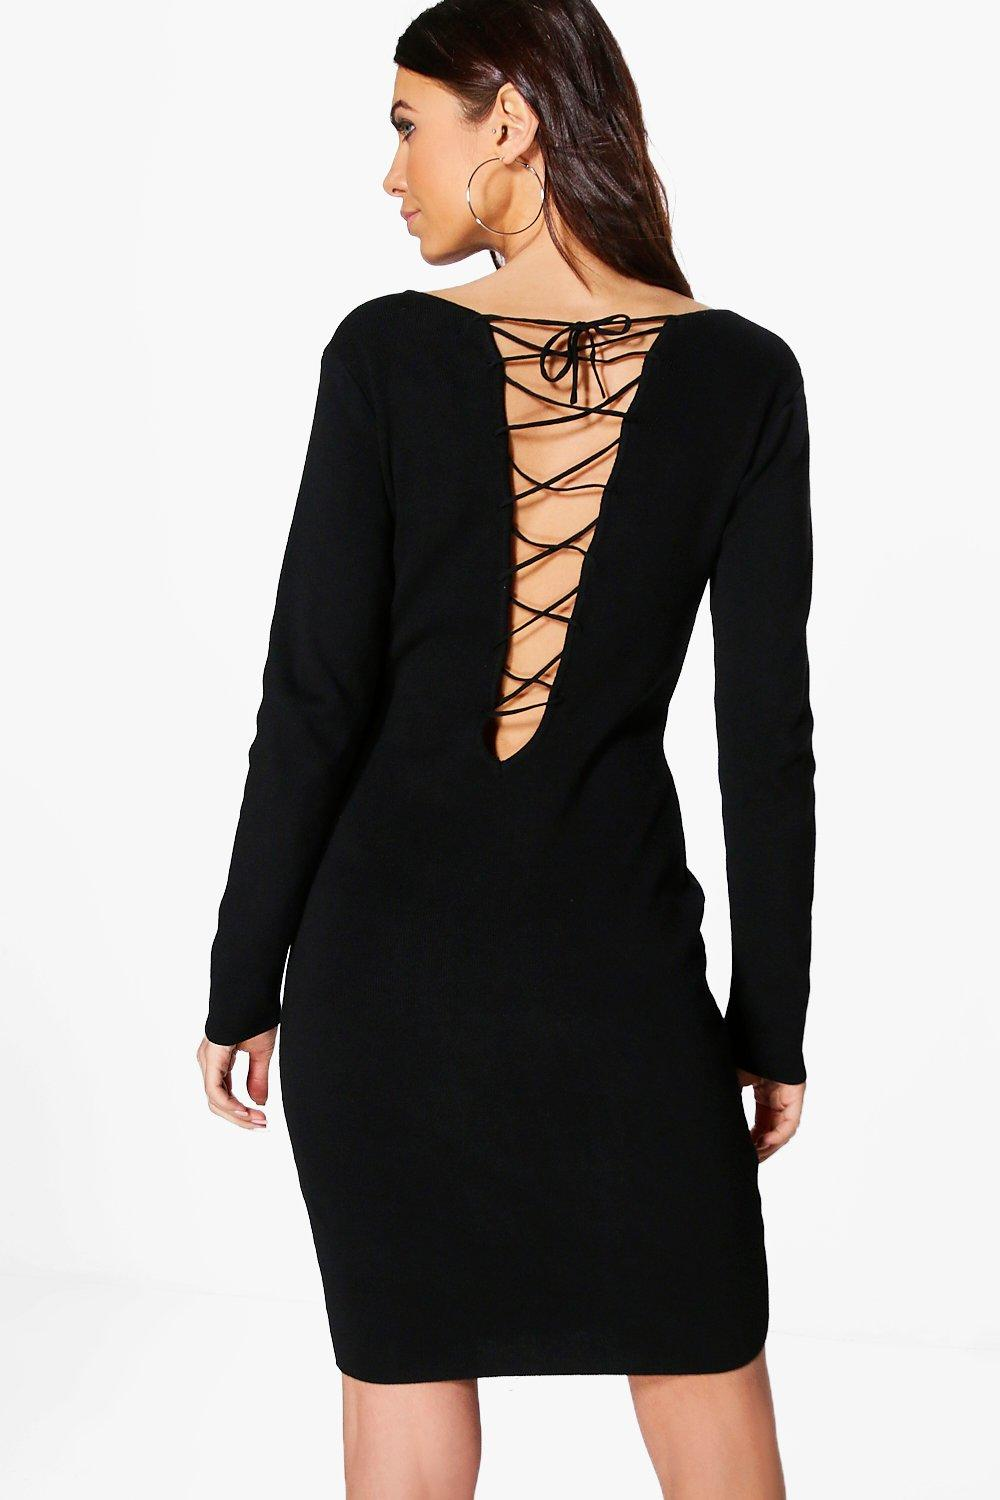 Rhona Lace Up Back Dress